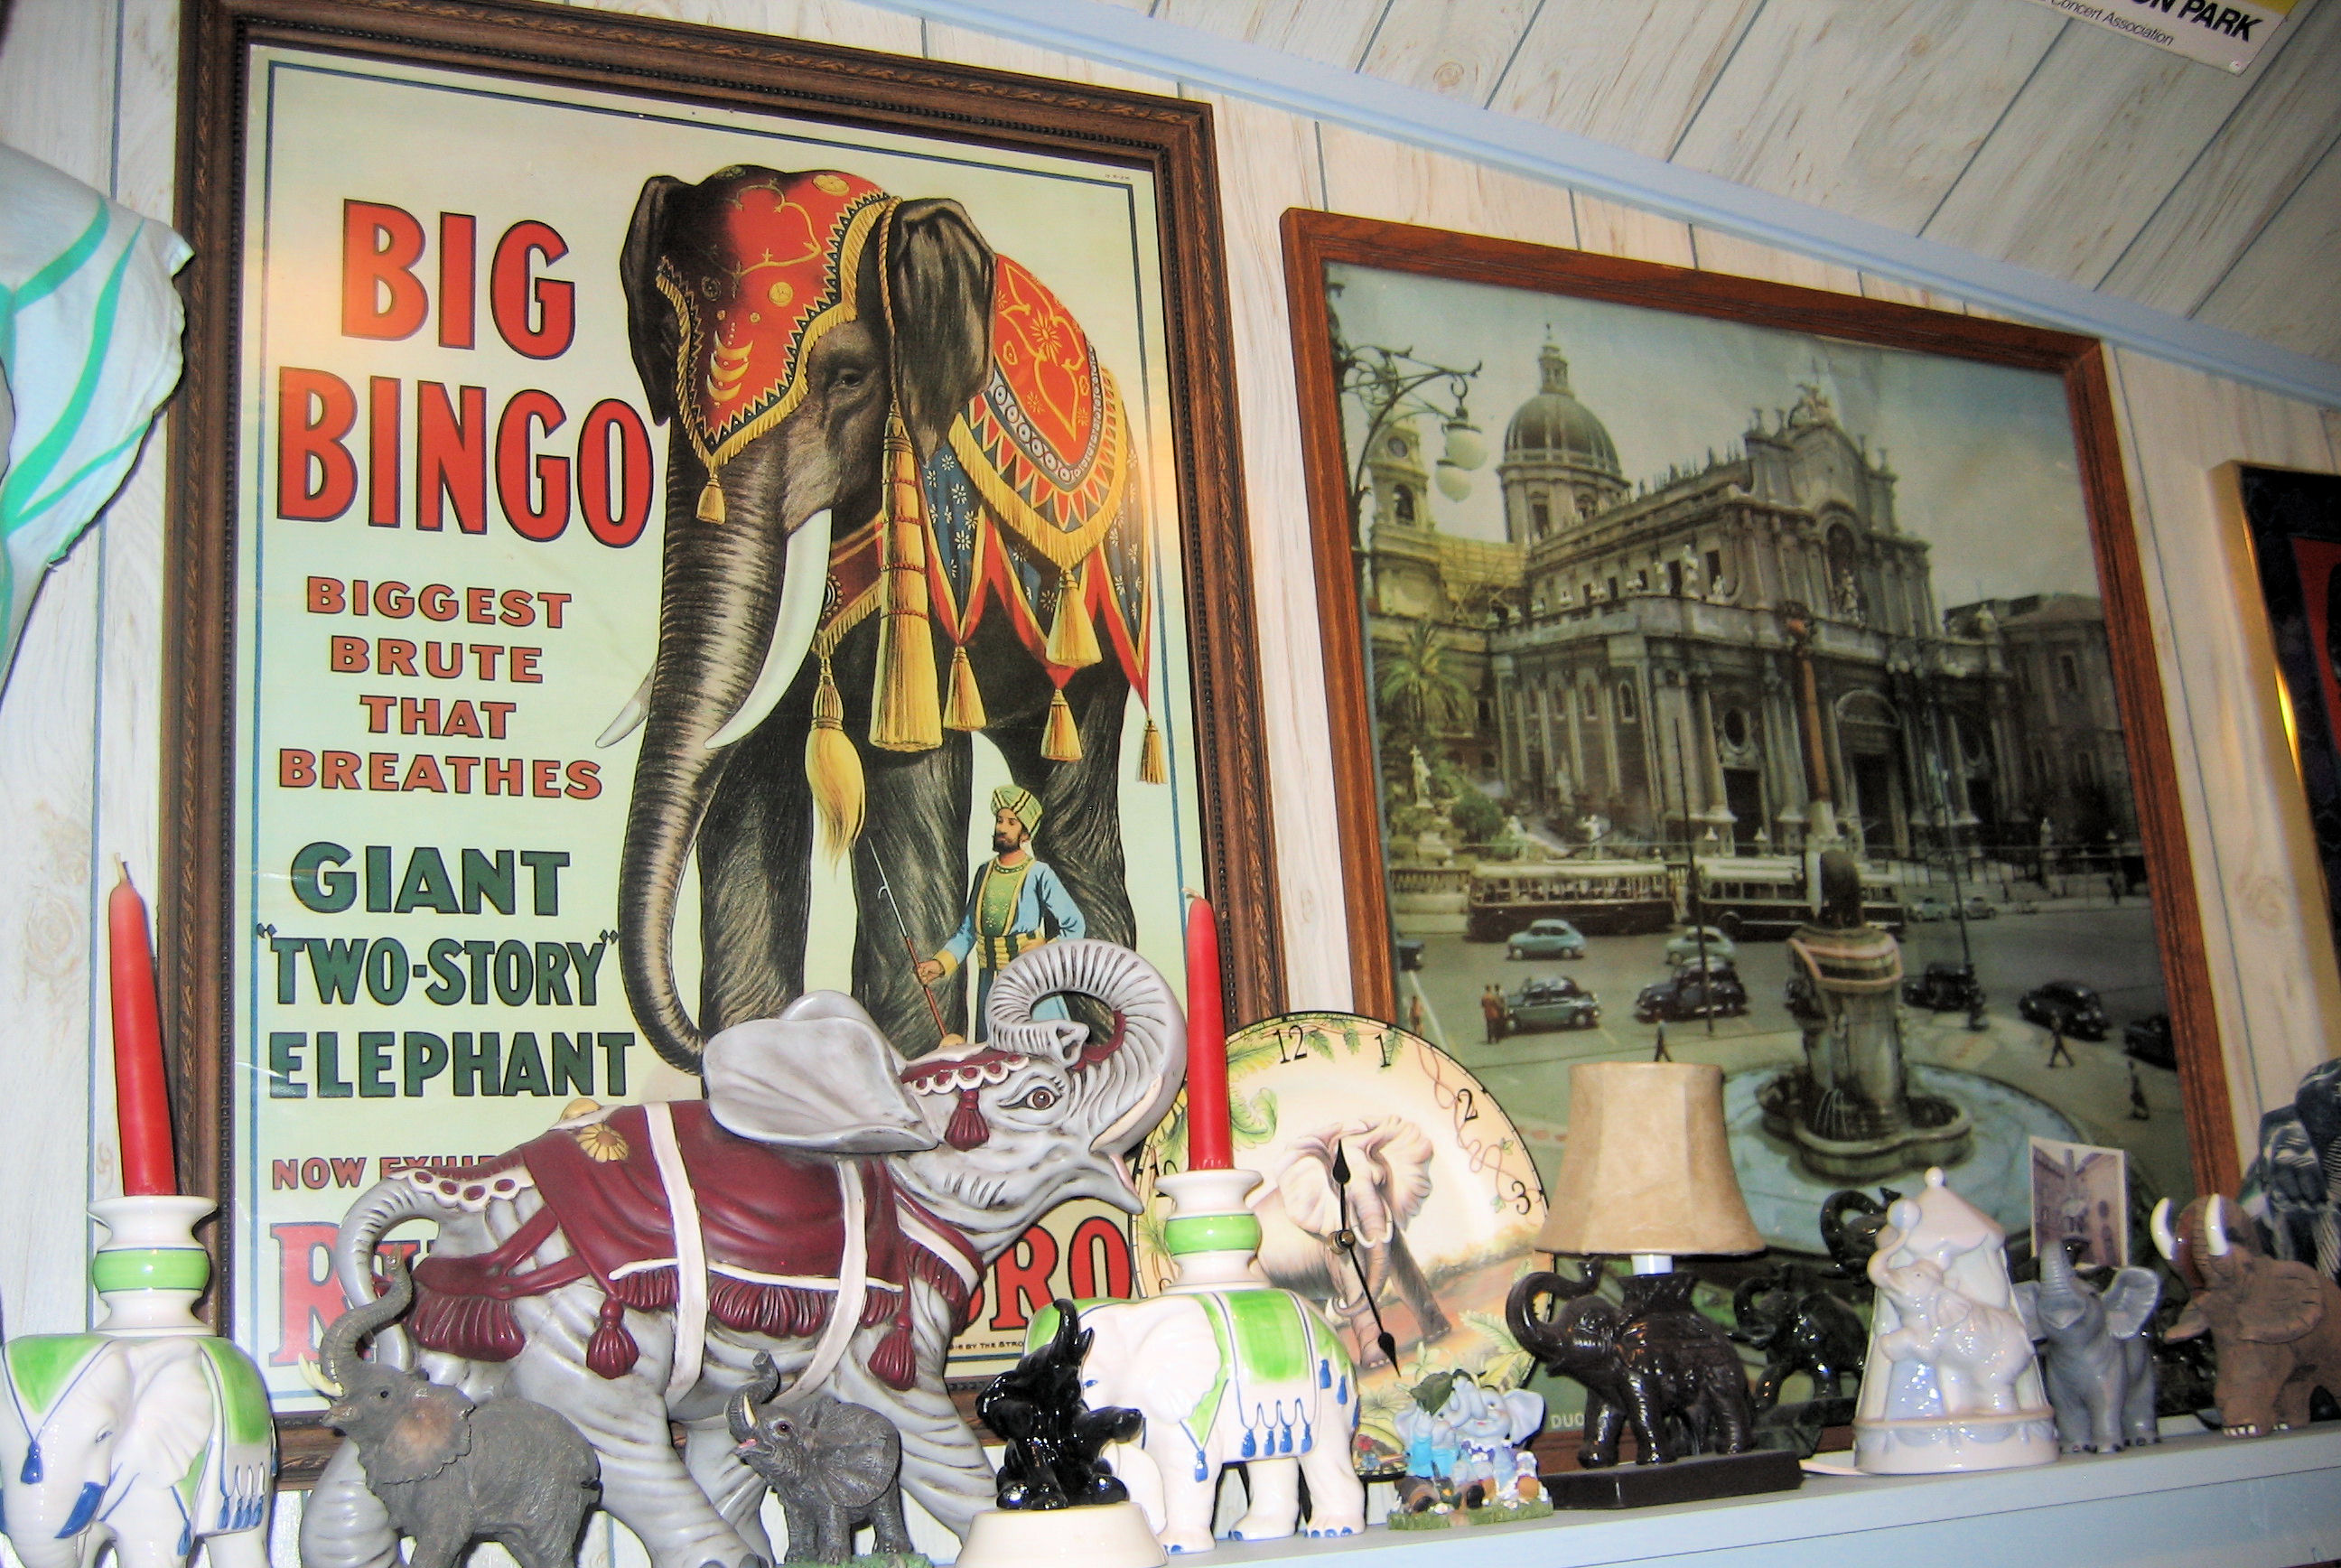 Mr. Ed's Elephant Museum